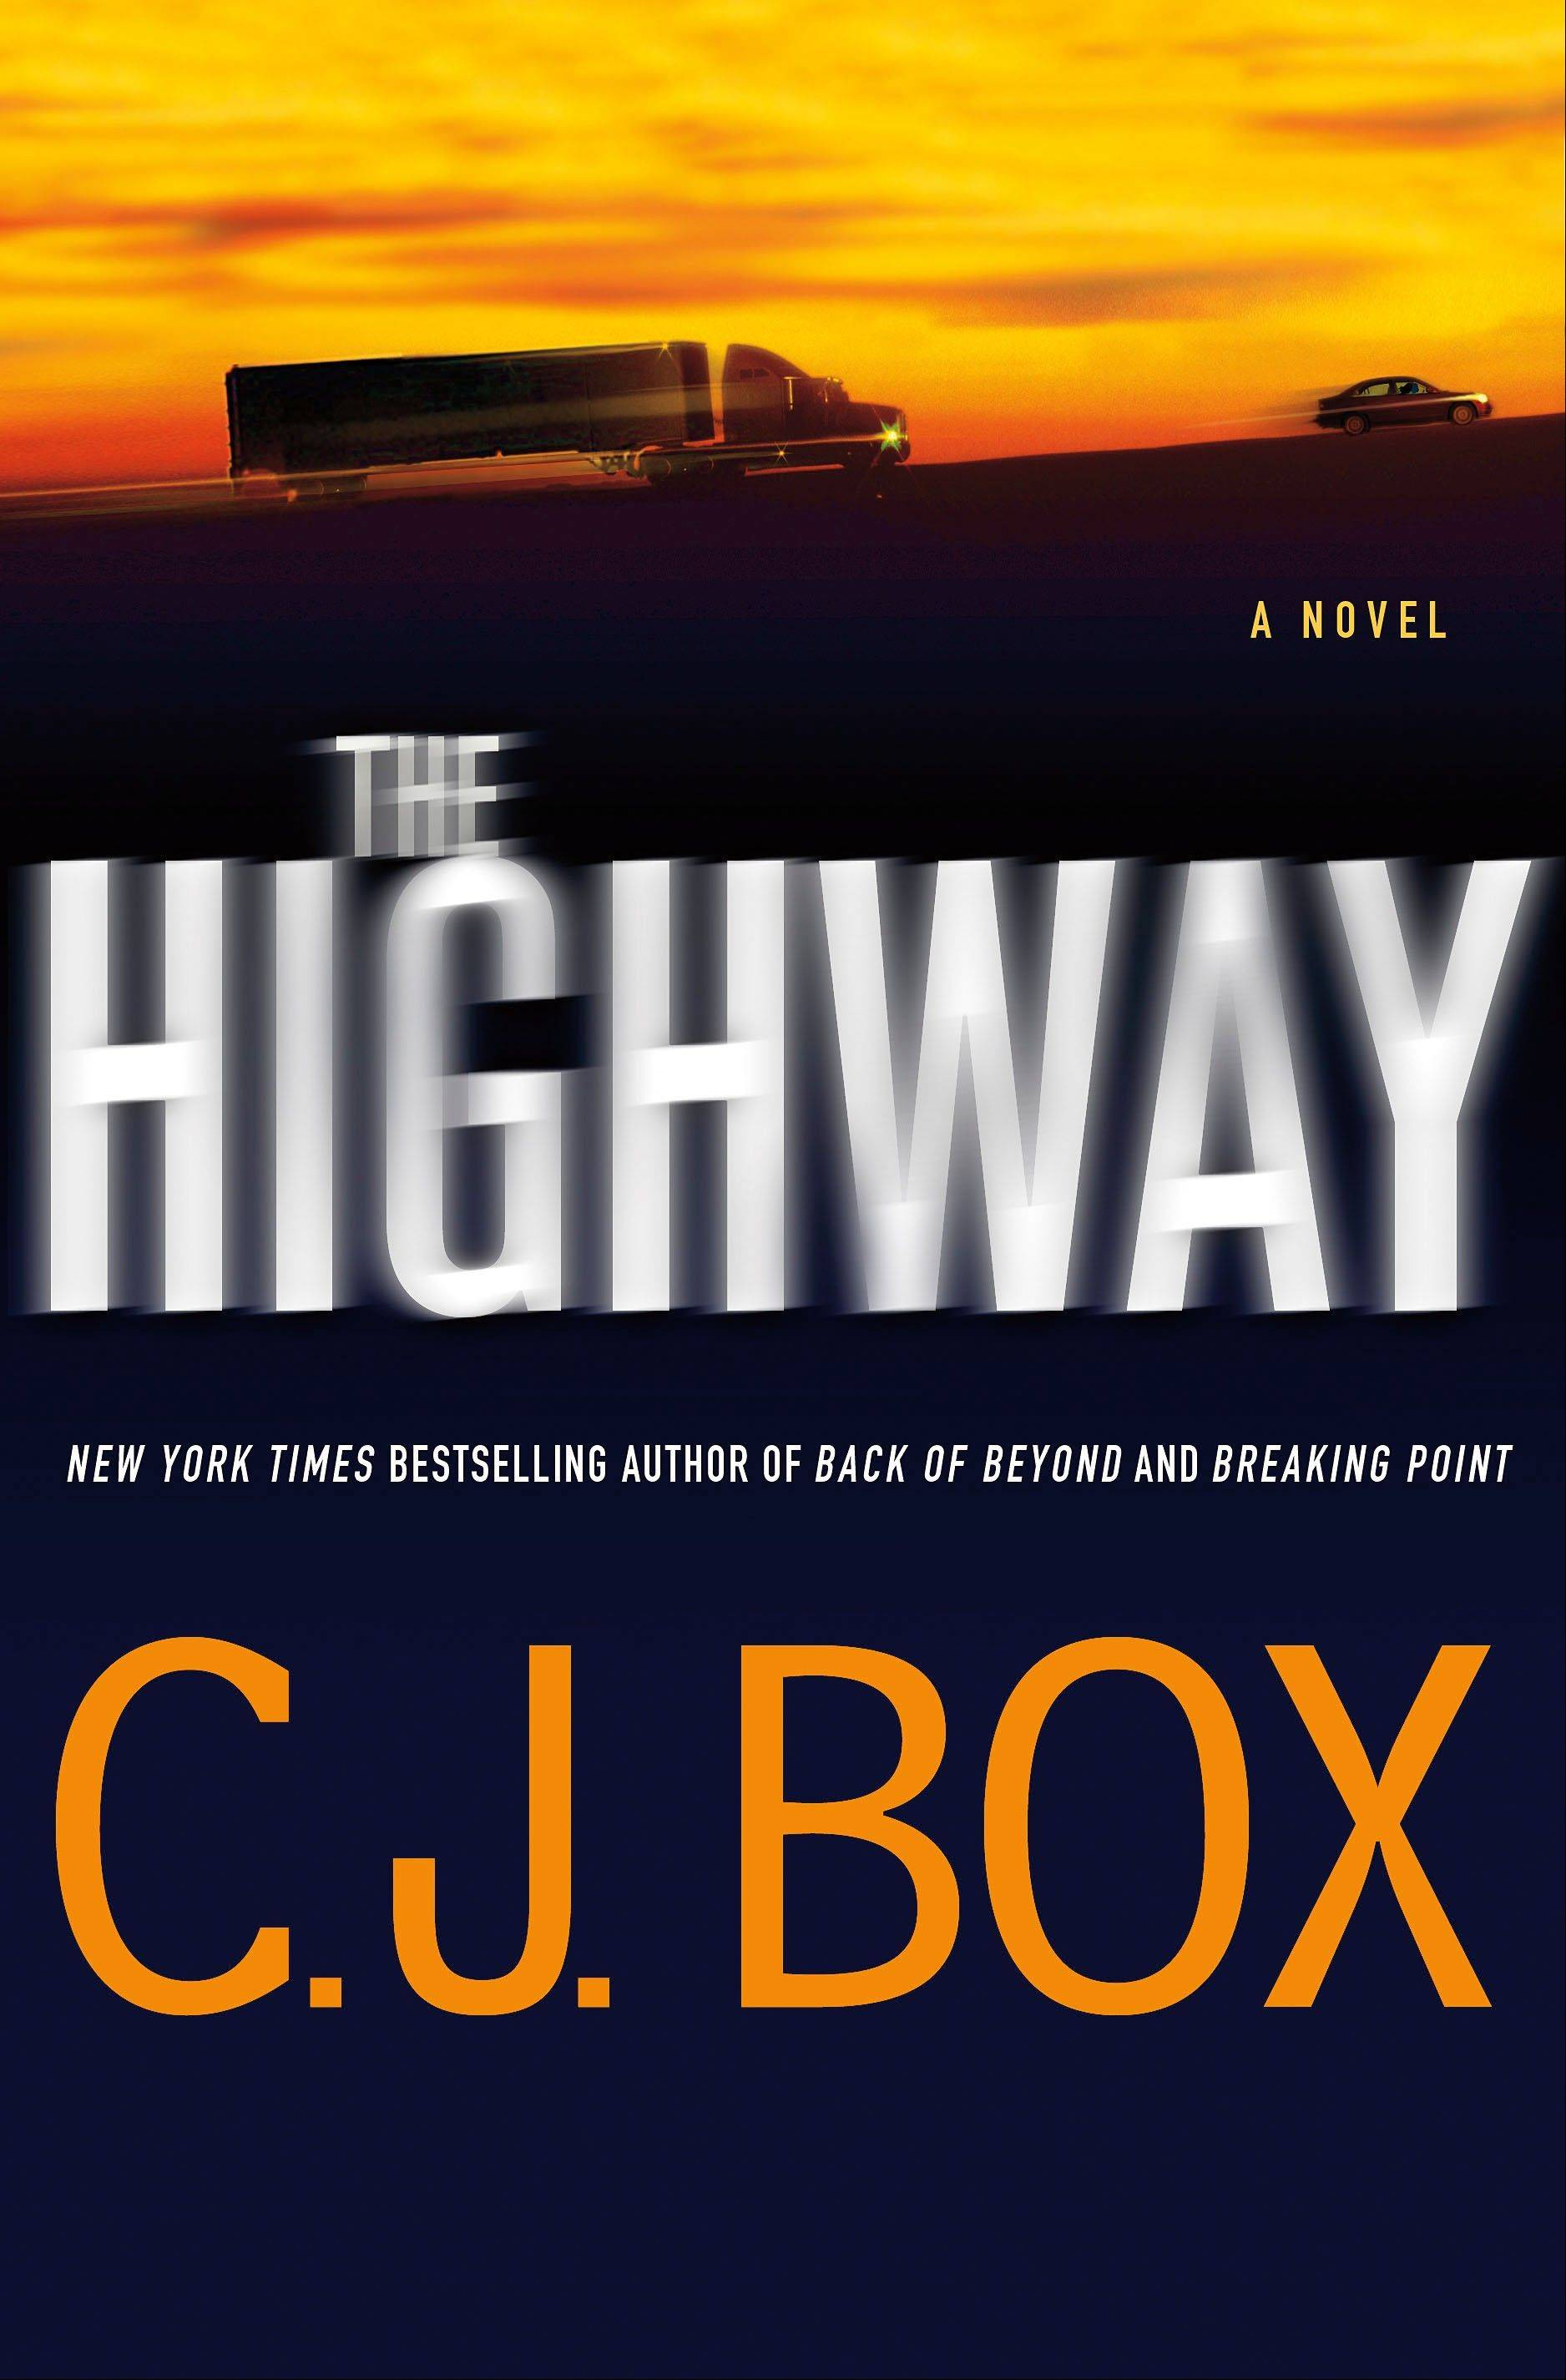 """The Highway"" by C.J. Box"